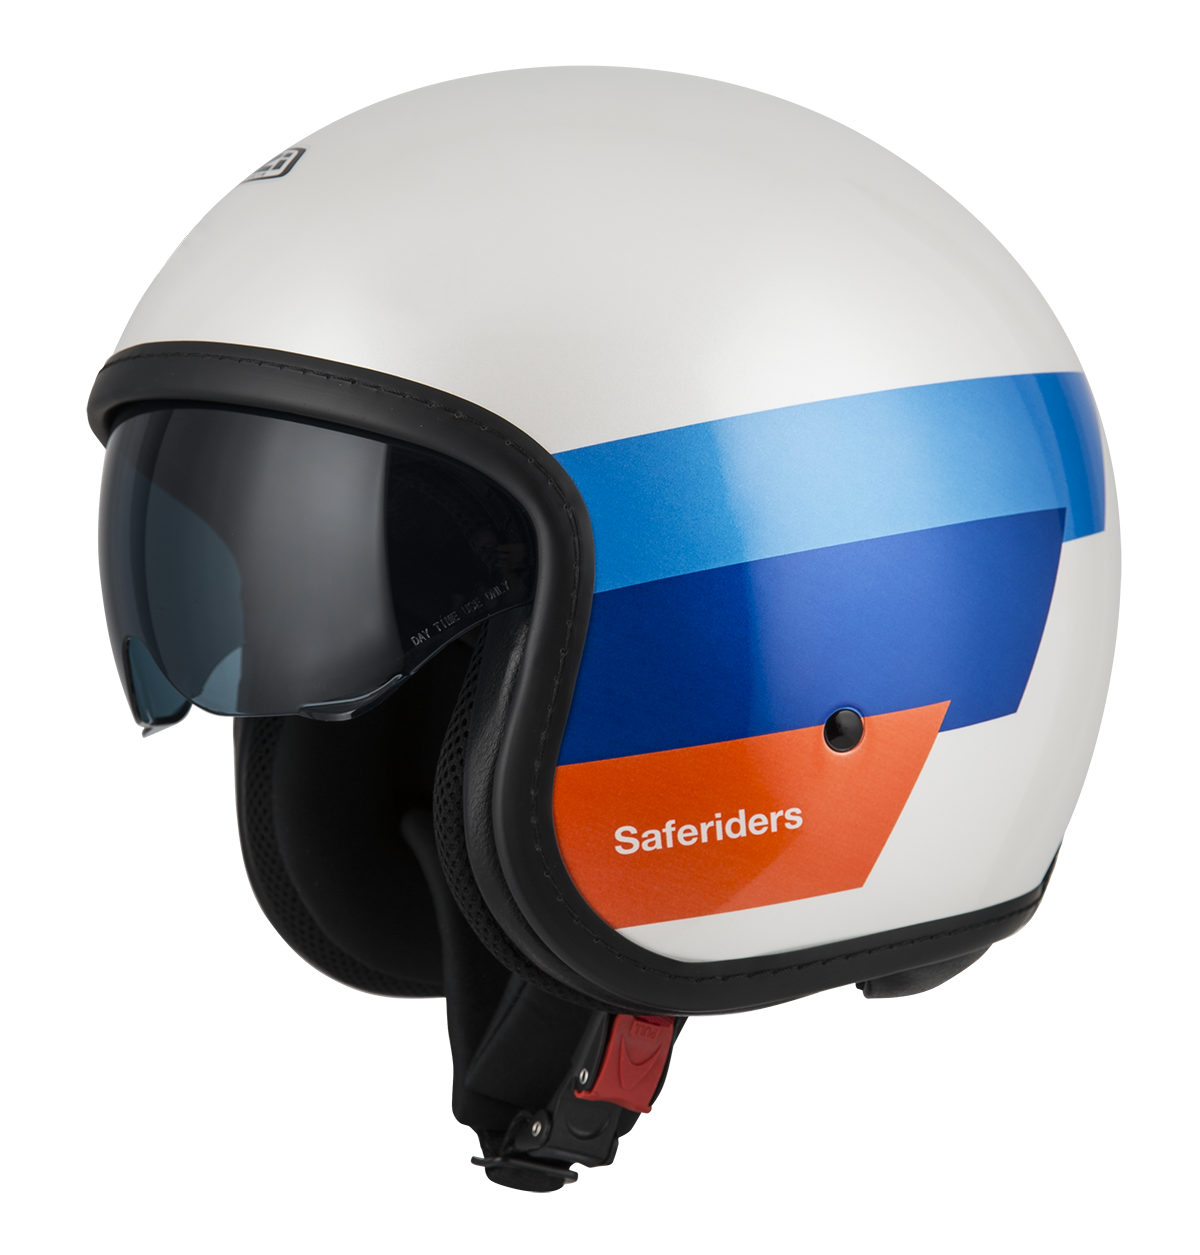 W-Saferiders